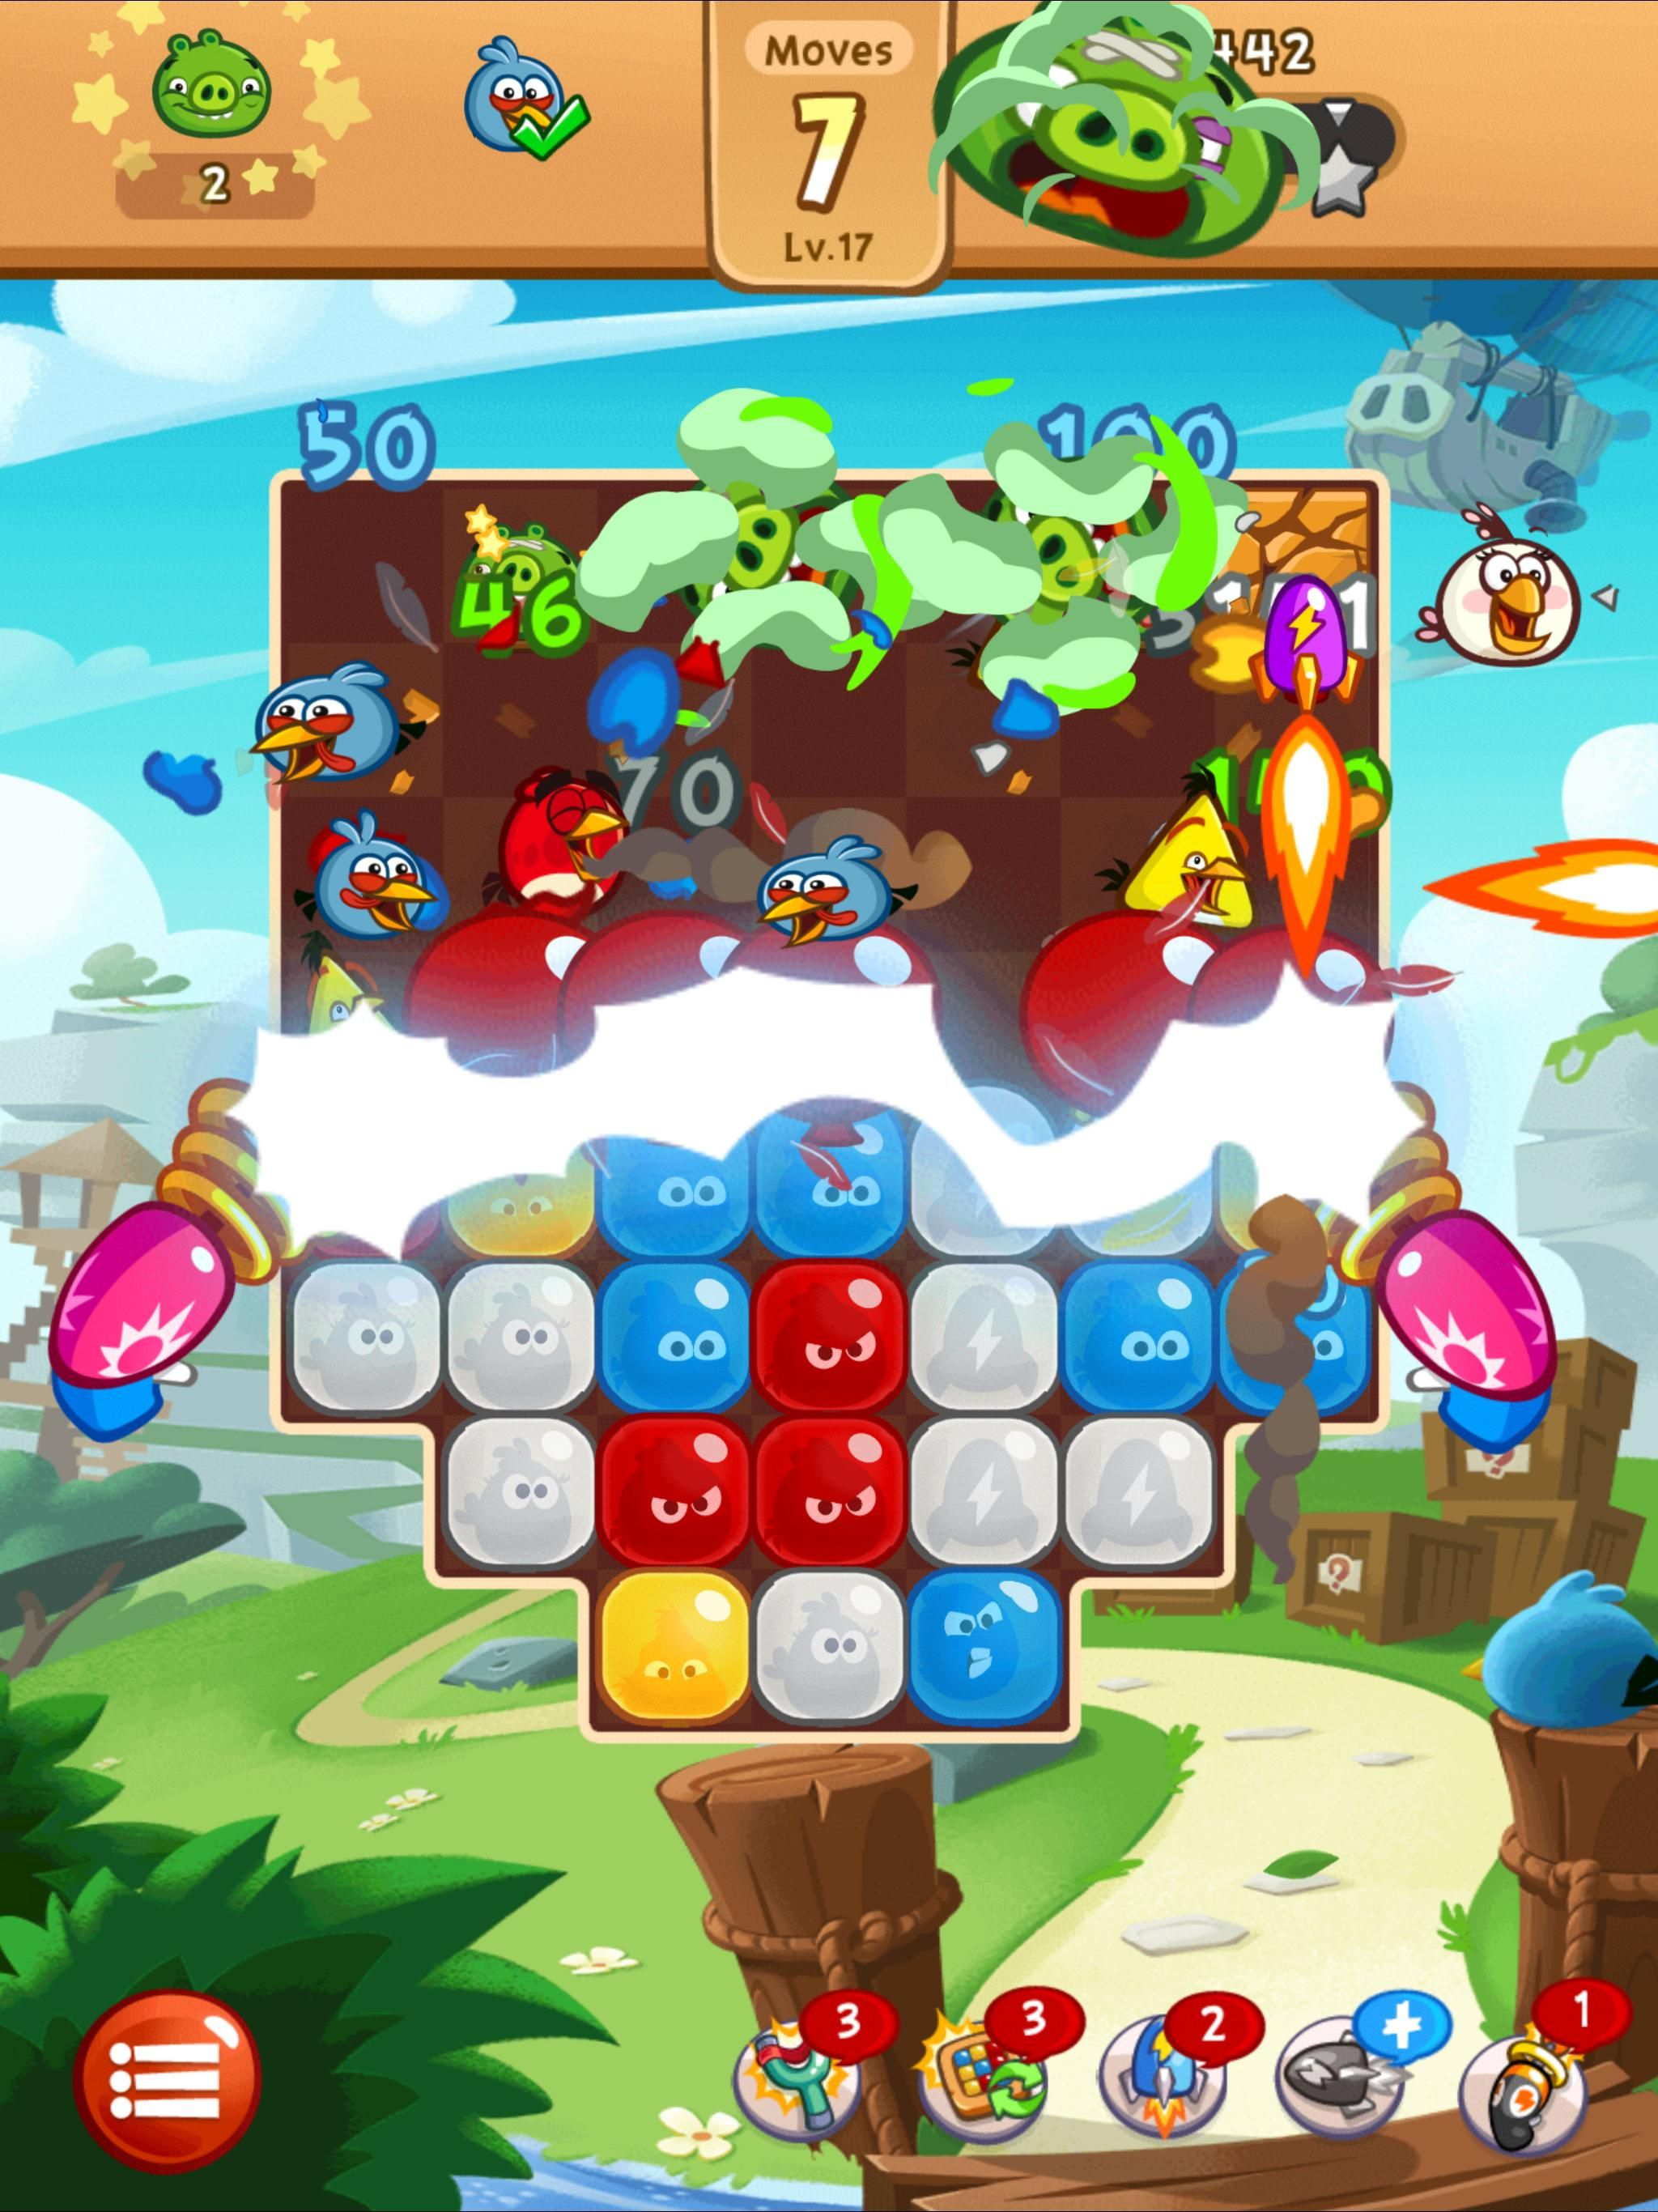 Angry Birds Blast Apk Latest Version Free Download With Images